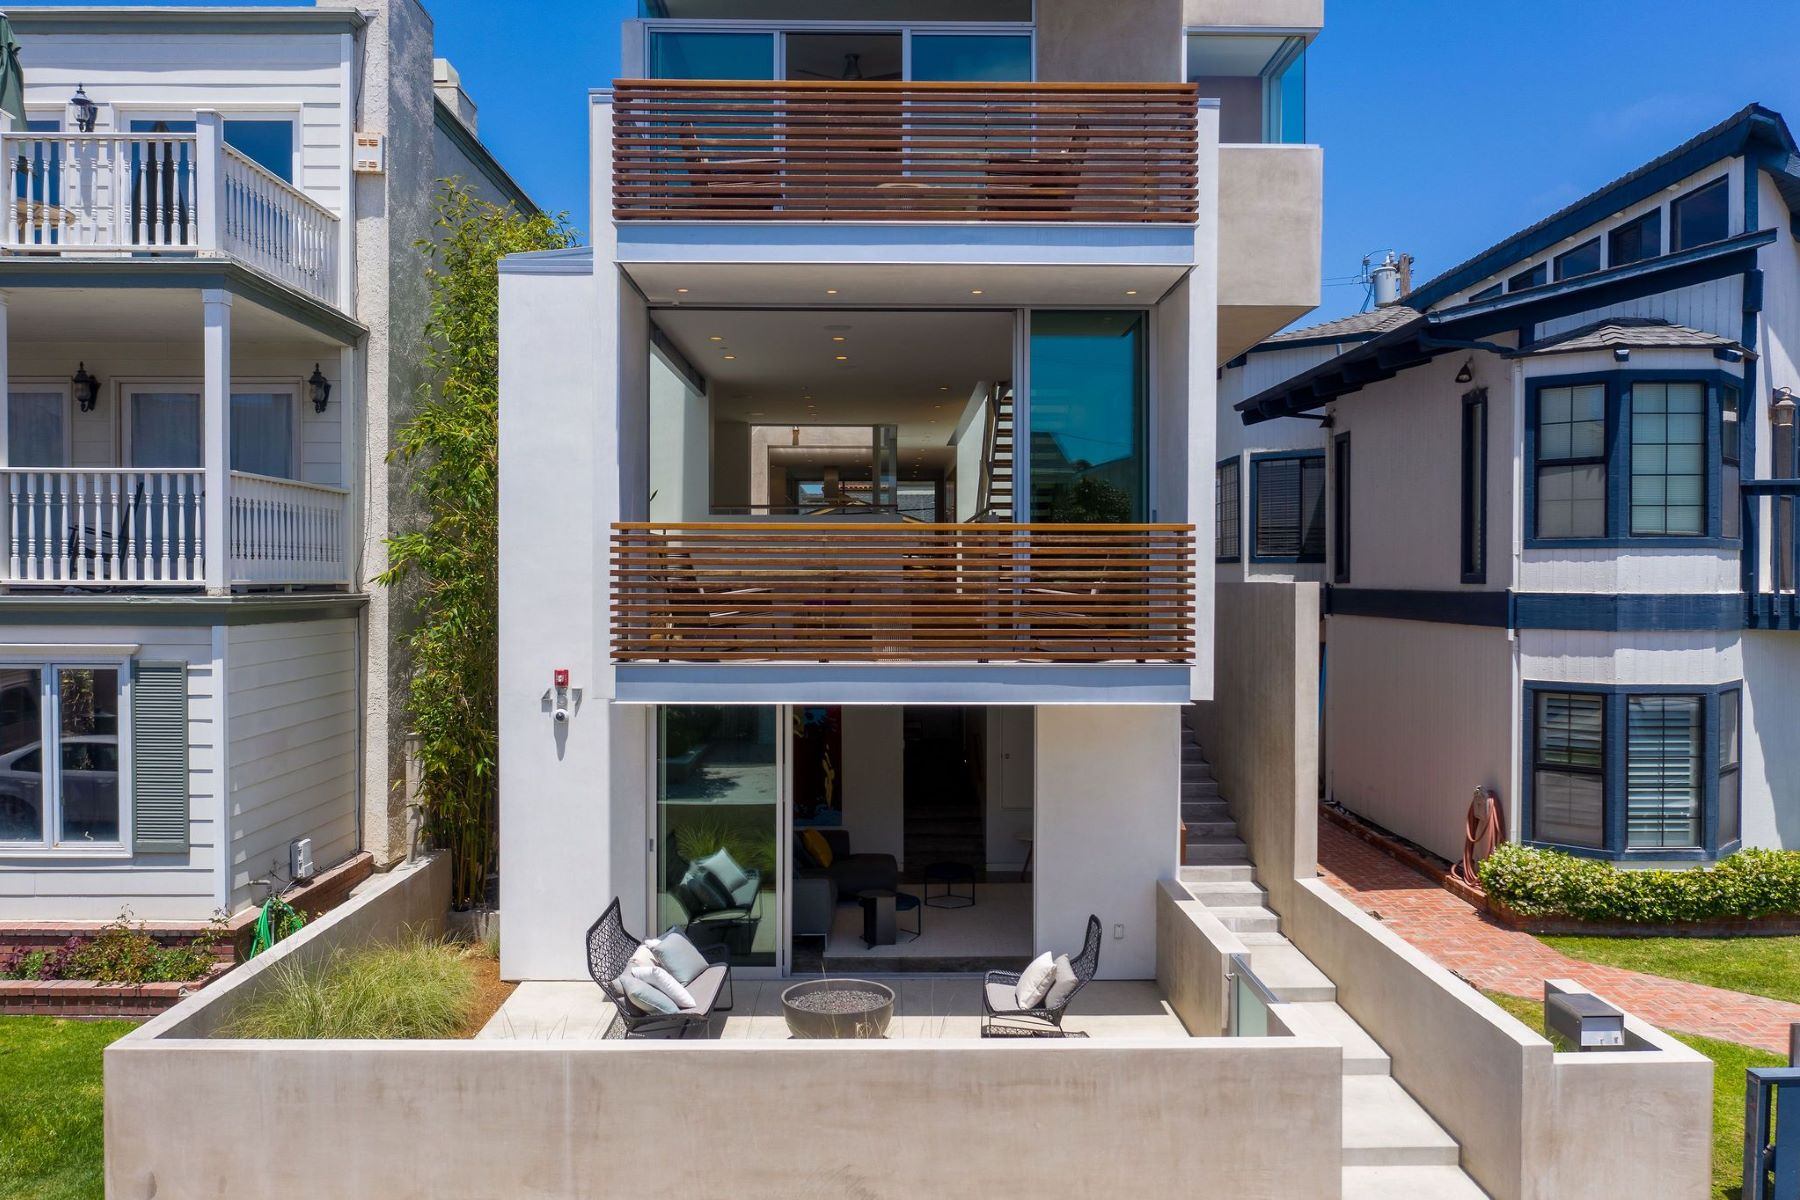 Single Family Homes for Active at 457 30th Street, Manhattan Beach, CA 90266 457 30th Street Manhattan Beach, California 90266 United States